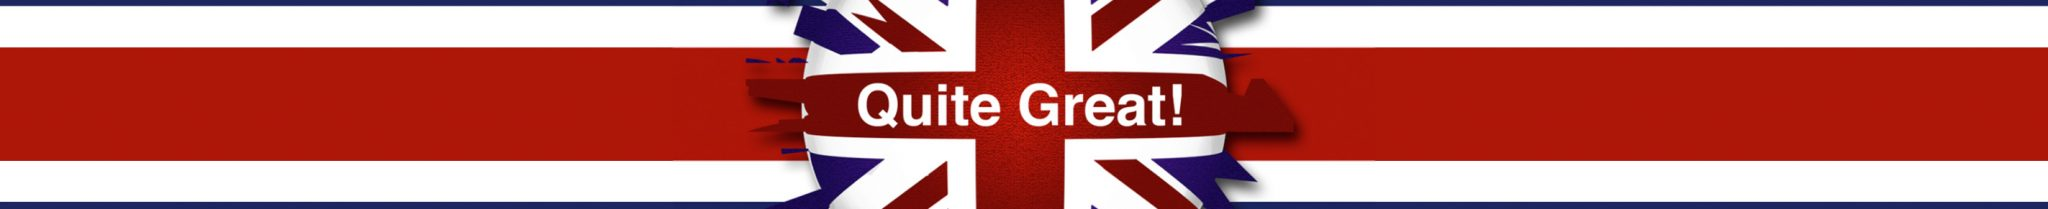 Quite Great Music PR Logo